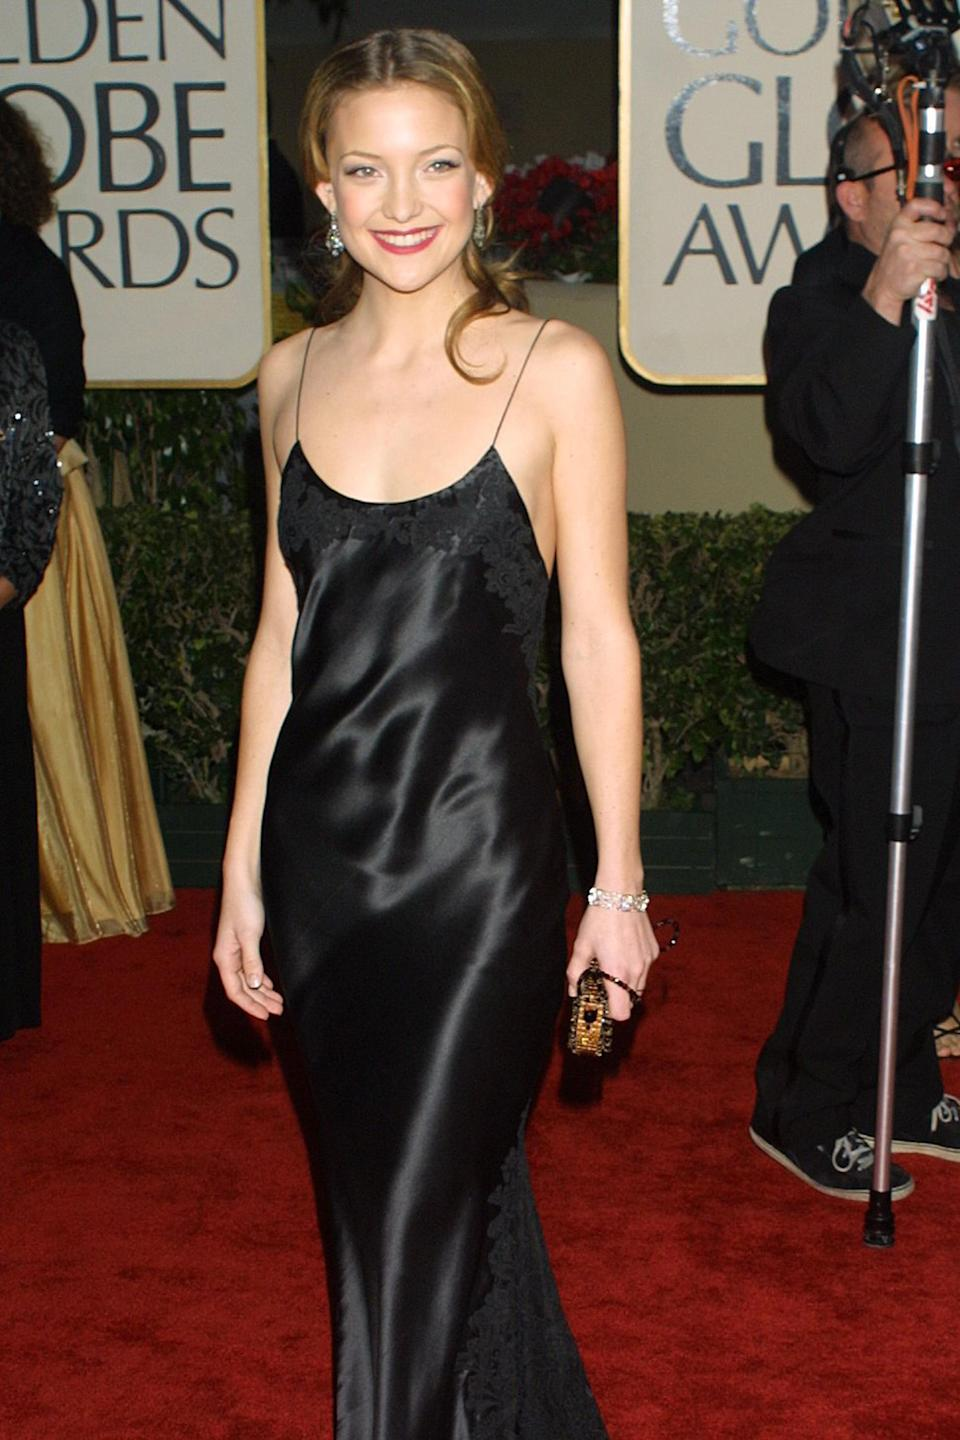 """<strong><h2>2001</h2></strong><br>A slip dress to the Golden Globes? Normally we'd say no way, but there's just something about Kate Hudson in Vera Wang that has us tossing normal red carpet rules out the window.<br><br><em>Kate Hudson in Vera Wang.</em><span class=""""copyright"""">Photo: KMazur/WireImage.</span>"""